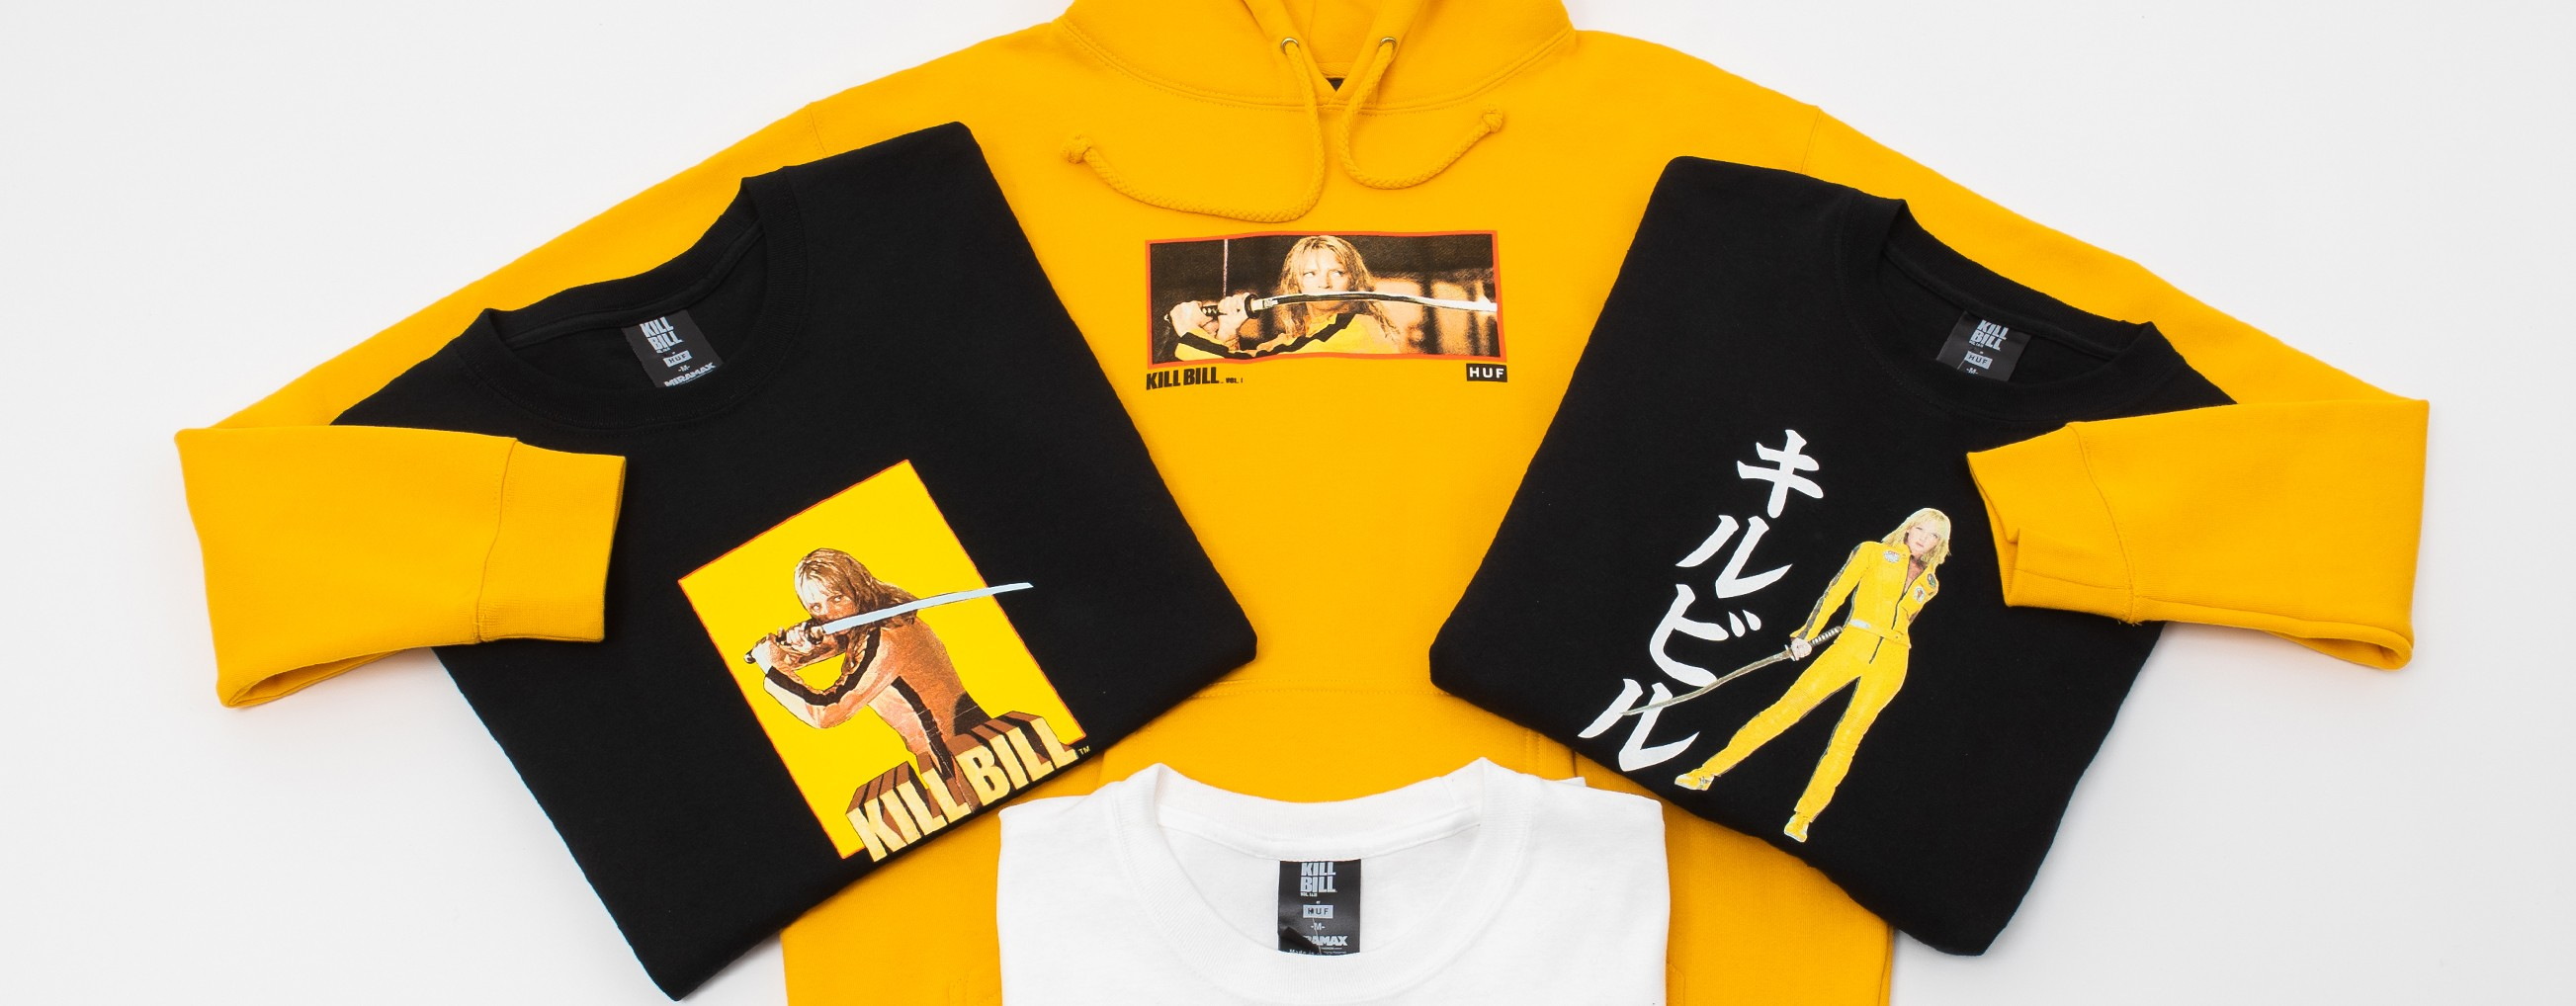 HUF X KILL BILL CAPSULE COLLECTION